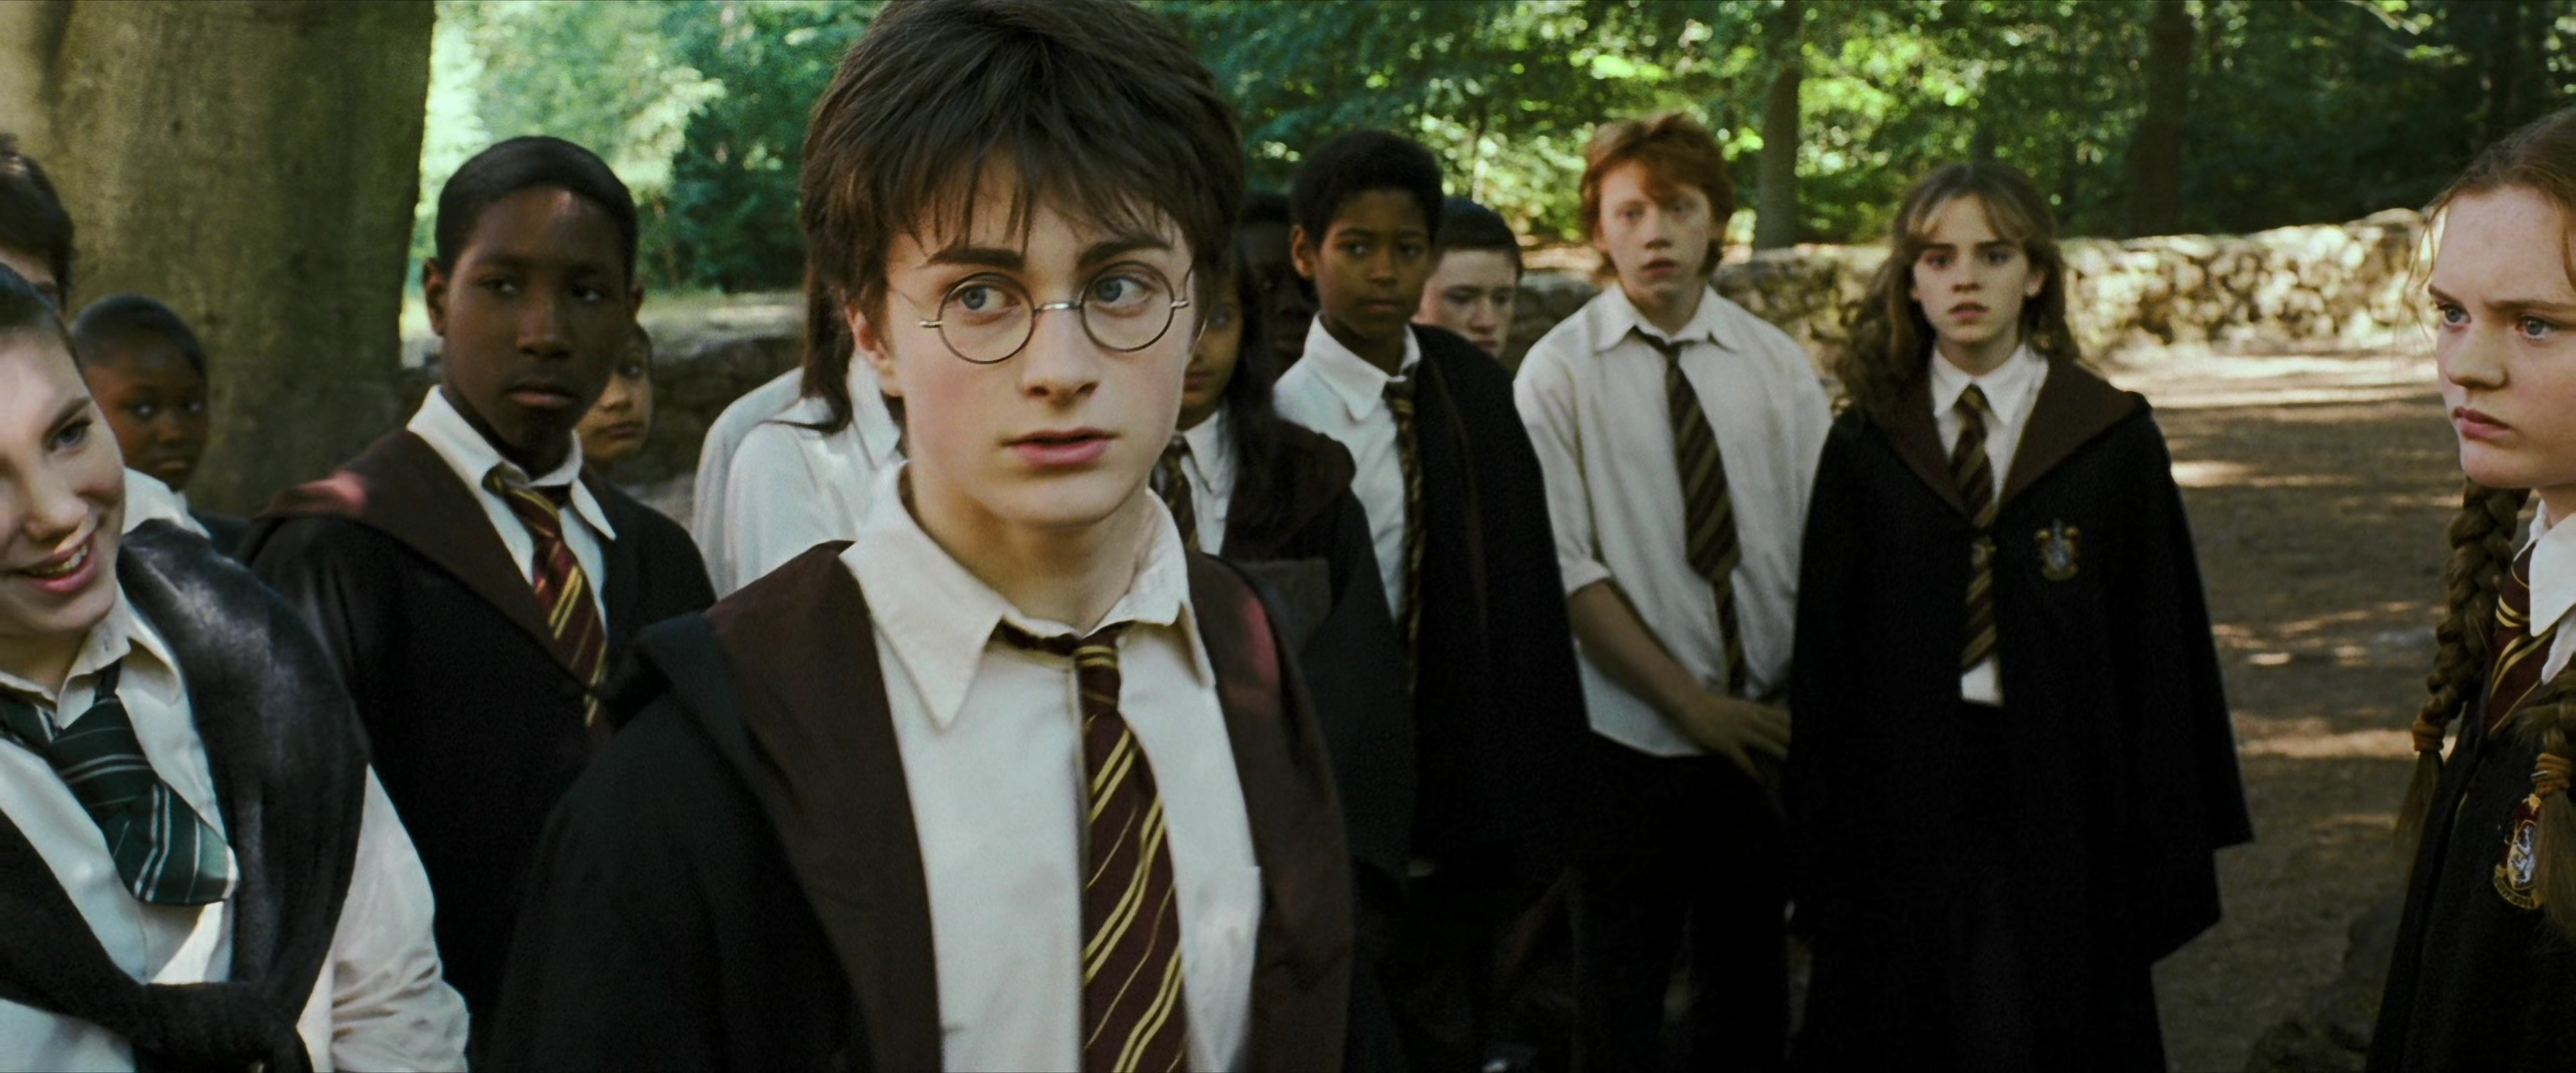 HBO Max hoping someone wants to make a Harry Potter live-action TV series